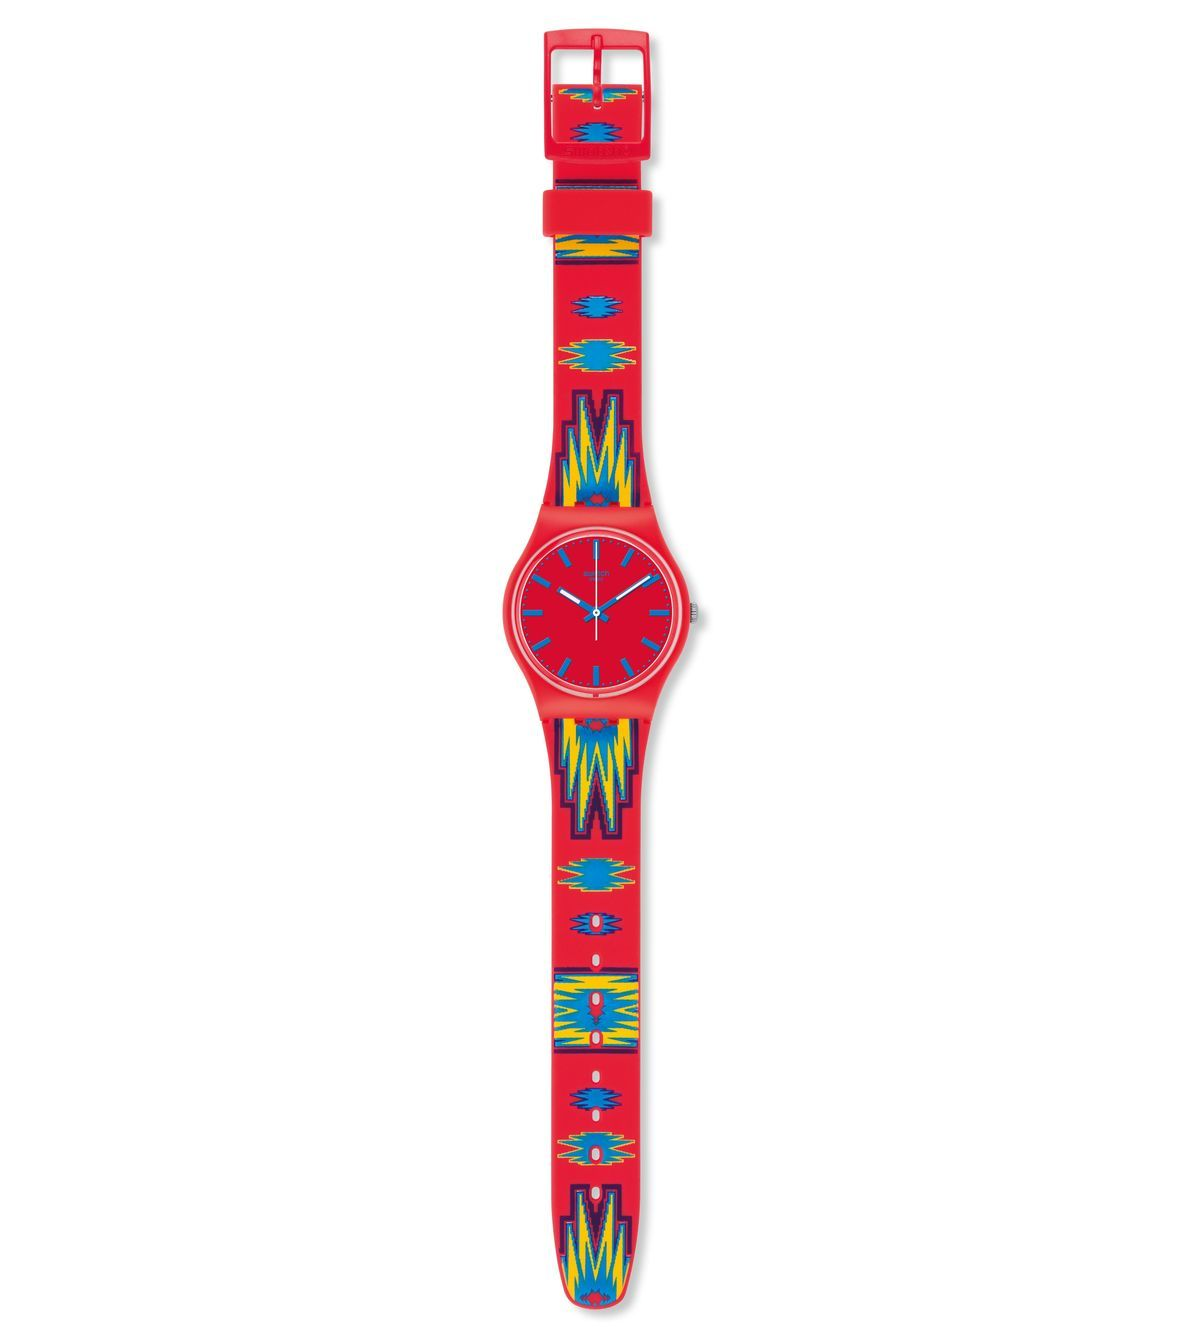 Margaritagr161Swatch® Strawberry Margaritagr161Swatch® Margaritagr161Swatch® Strawberry Strawberry Strawberry España España Margaritagr161Swatch® España España Strawberry H9Wb2eEIDY